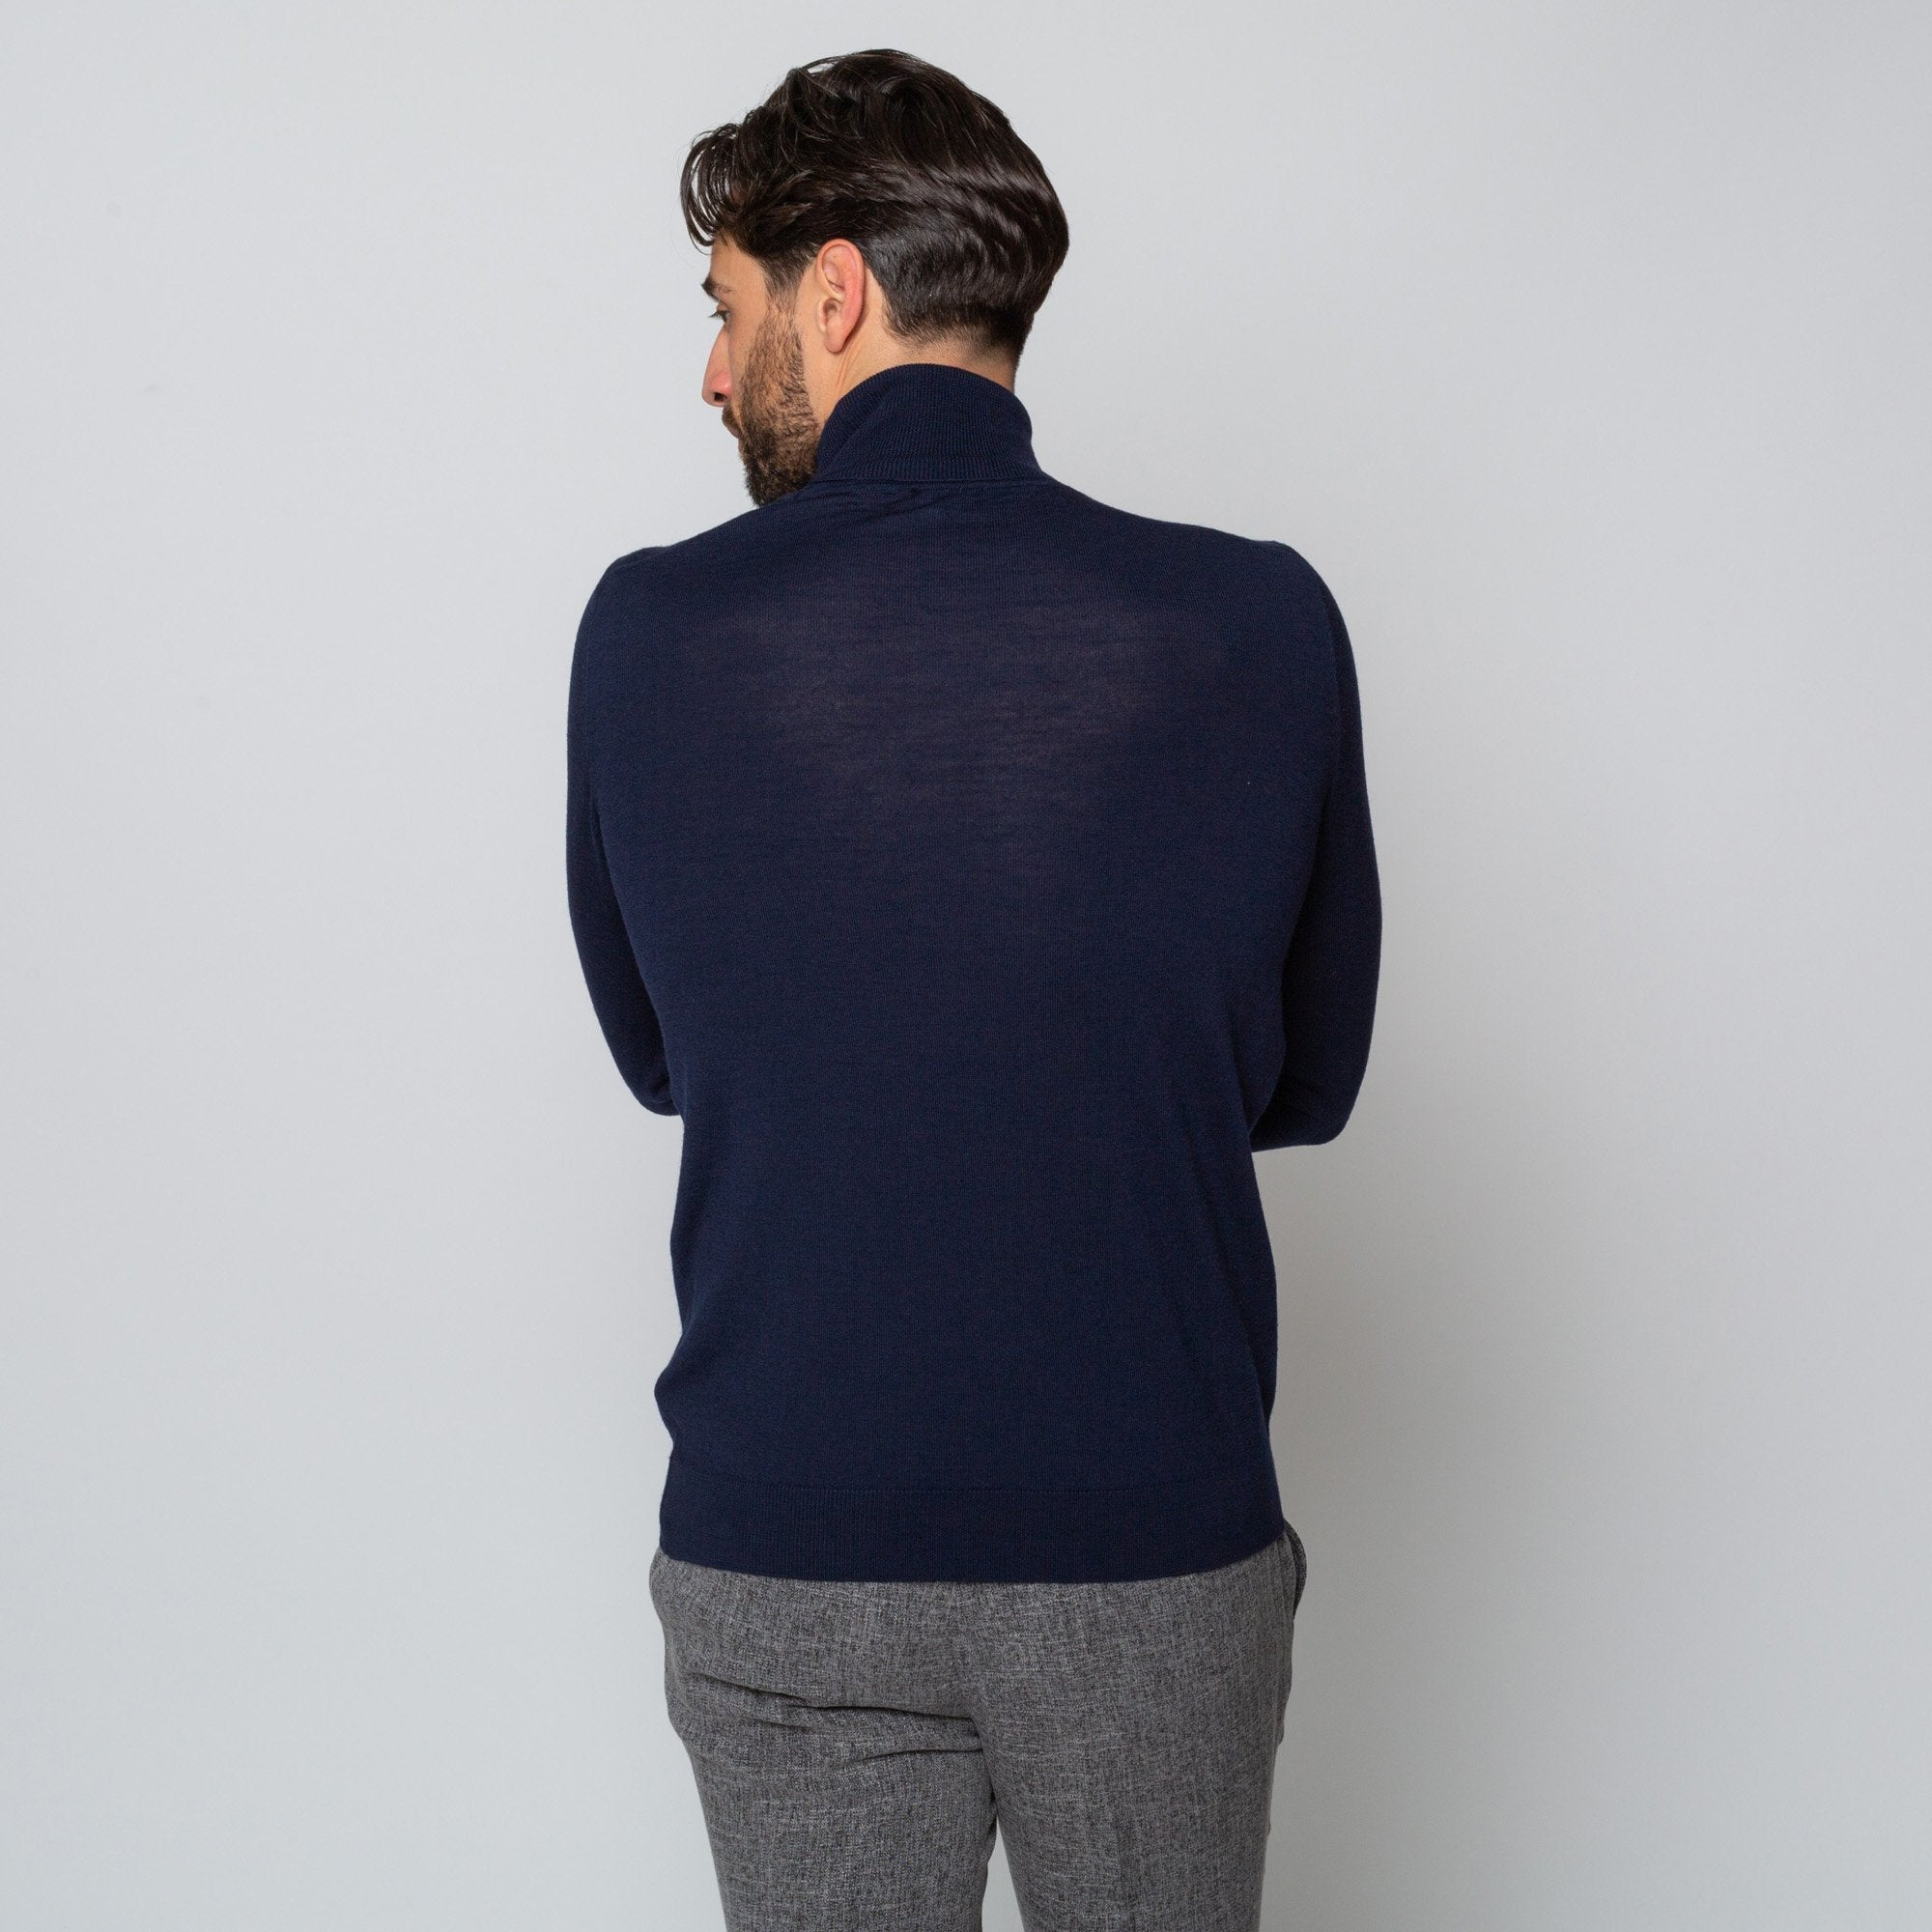 Goodwin Smith Clothing S / Navy / Merino Wool UNION NAVY